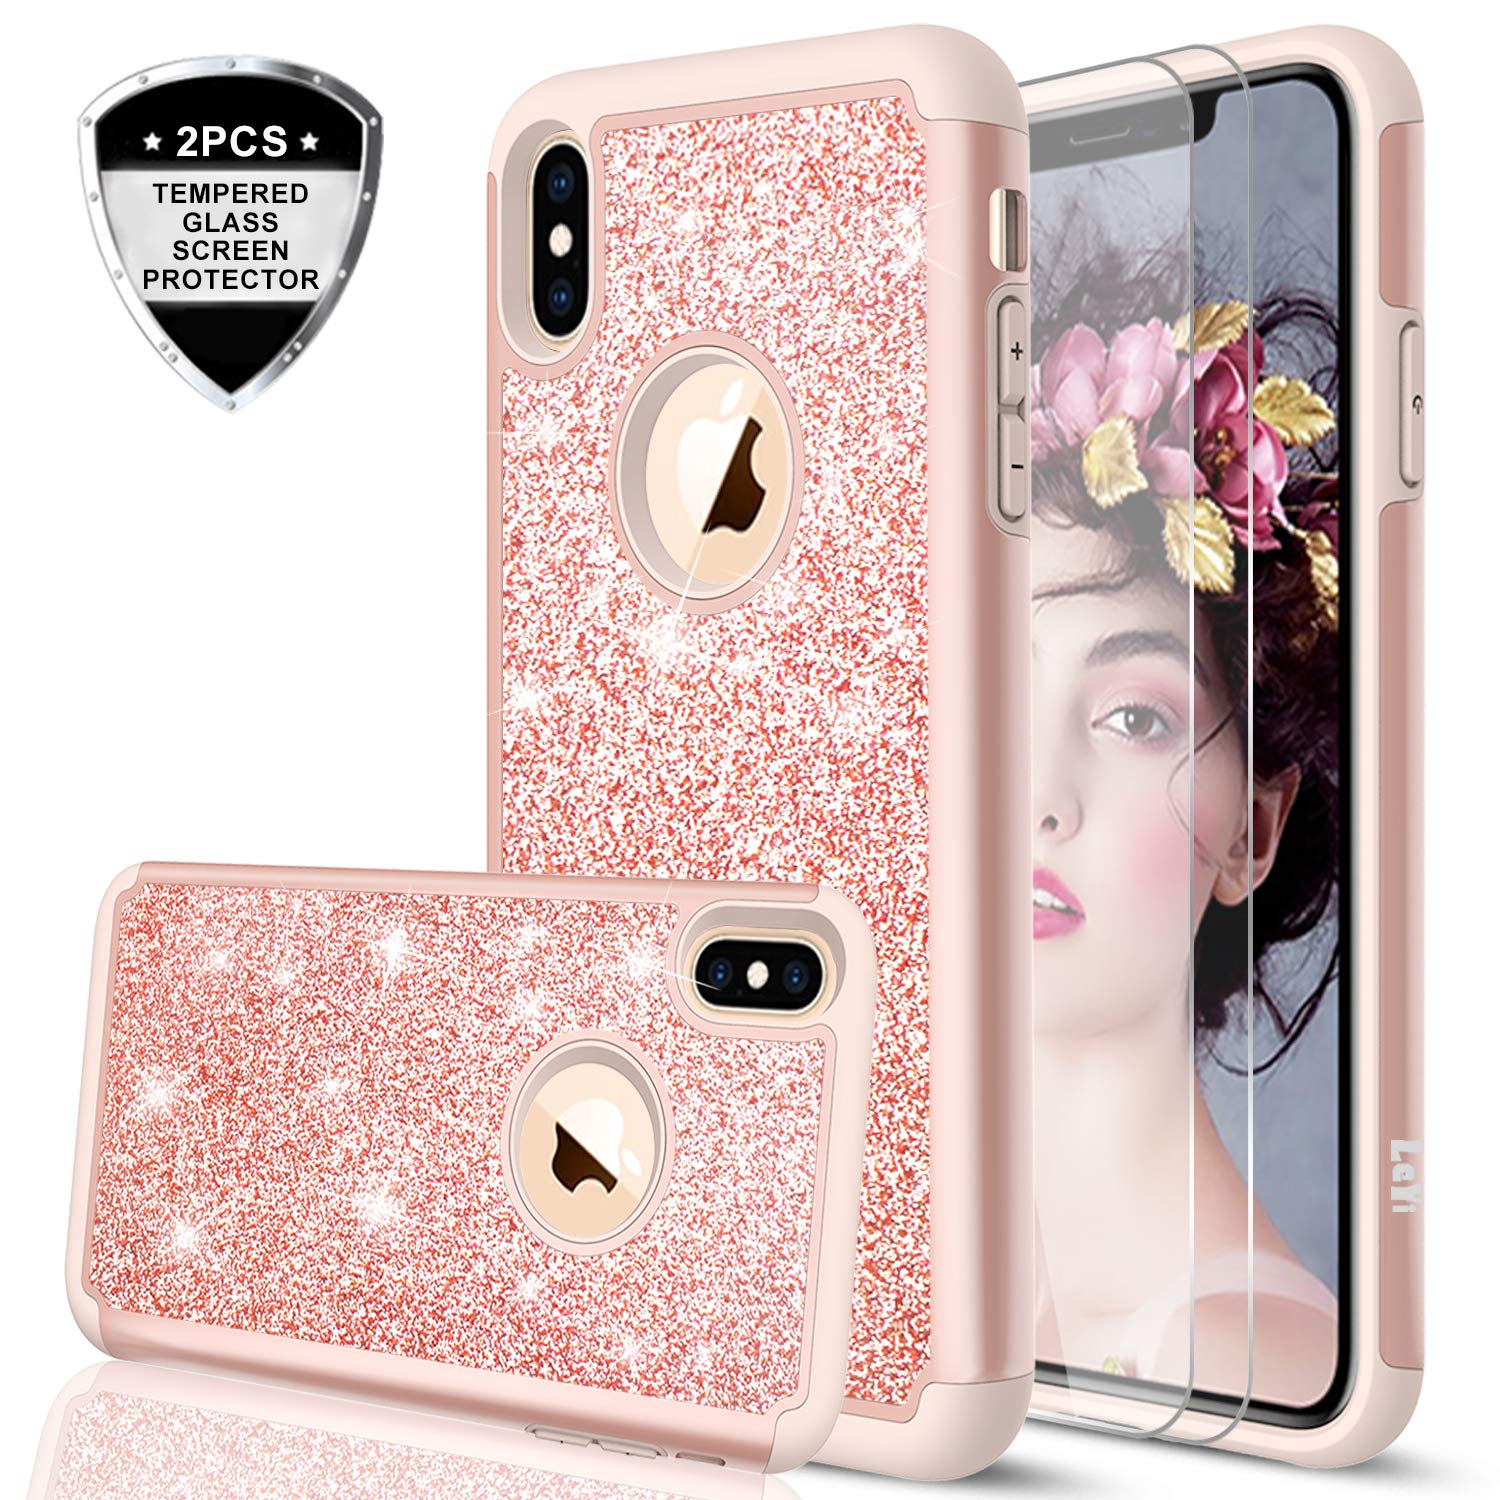 iPhone Xs MAX Case (2018) with Tempered Glass Screen Protector [2 Pack] for Girls Women, LeYi Glitter Bling Dual Layer Protective Phone Case Cover for iPhone Xs MAX (6.5') TP Rose Gold 4344596376